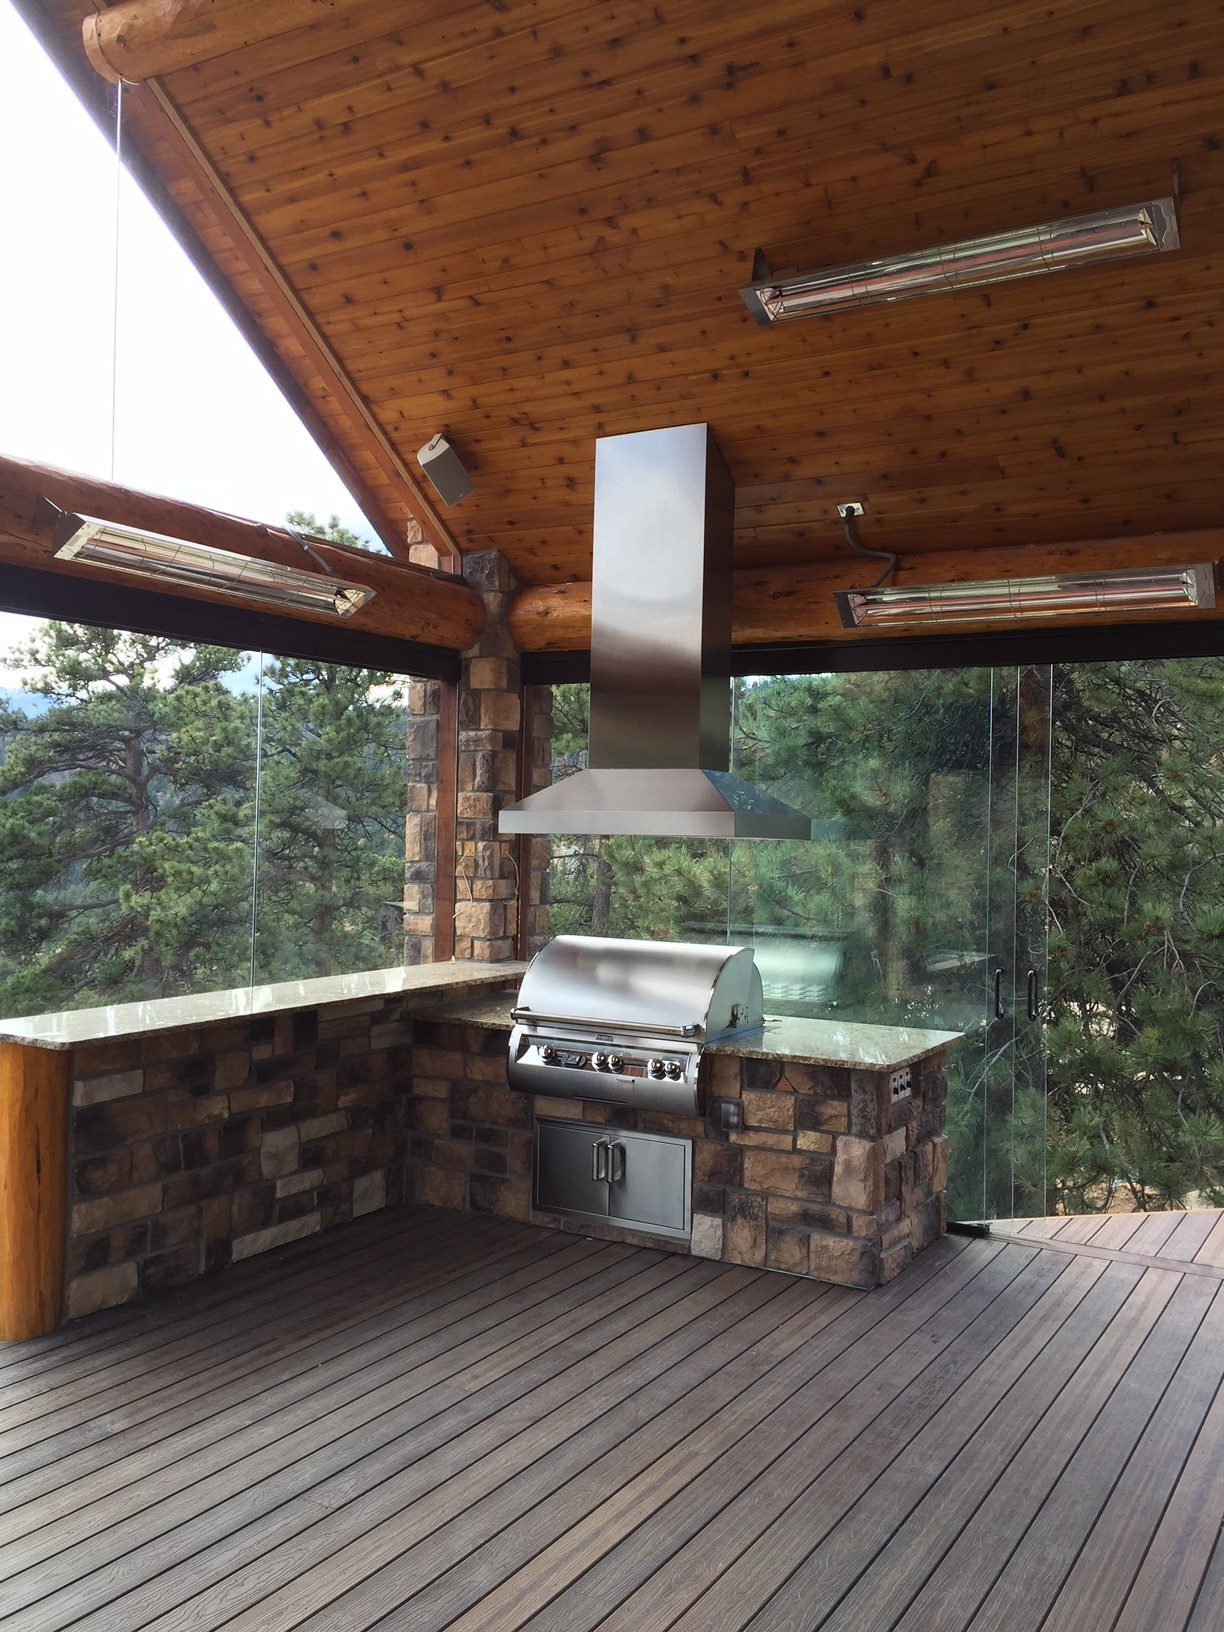 Ask Us About Our BBQ Centers And Electric Heaters That Will Fit On Any Patio